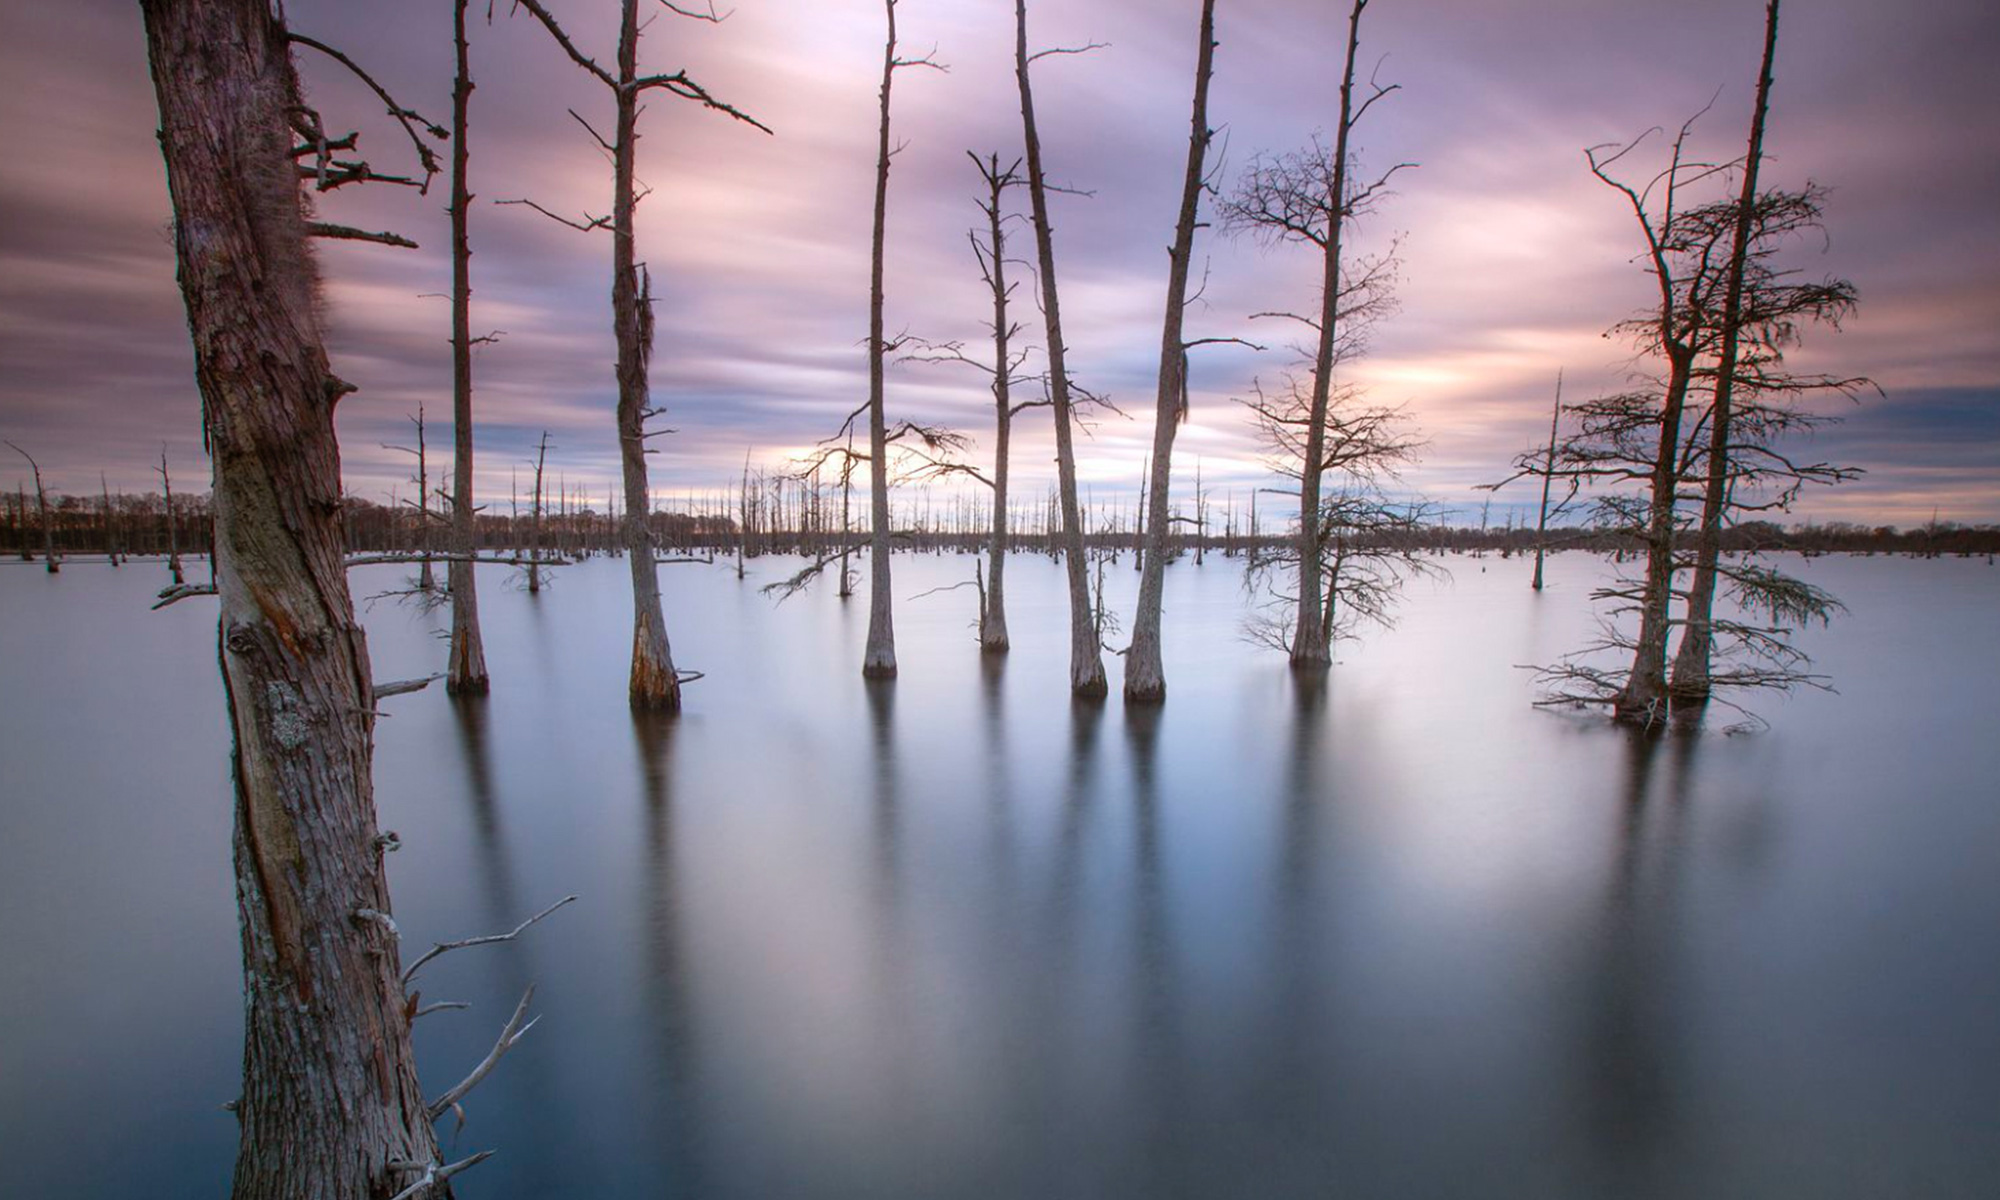 Dead trees in a flooded landscape.